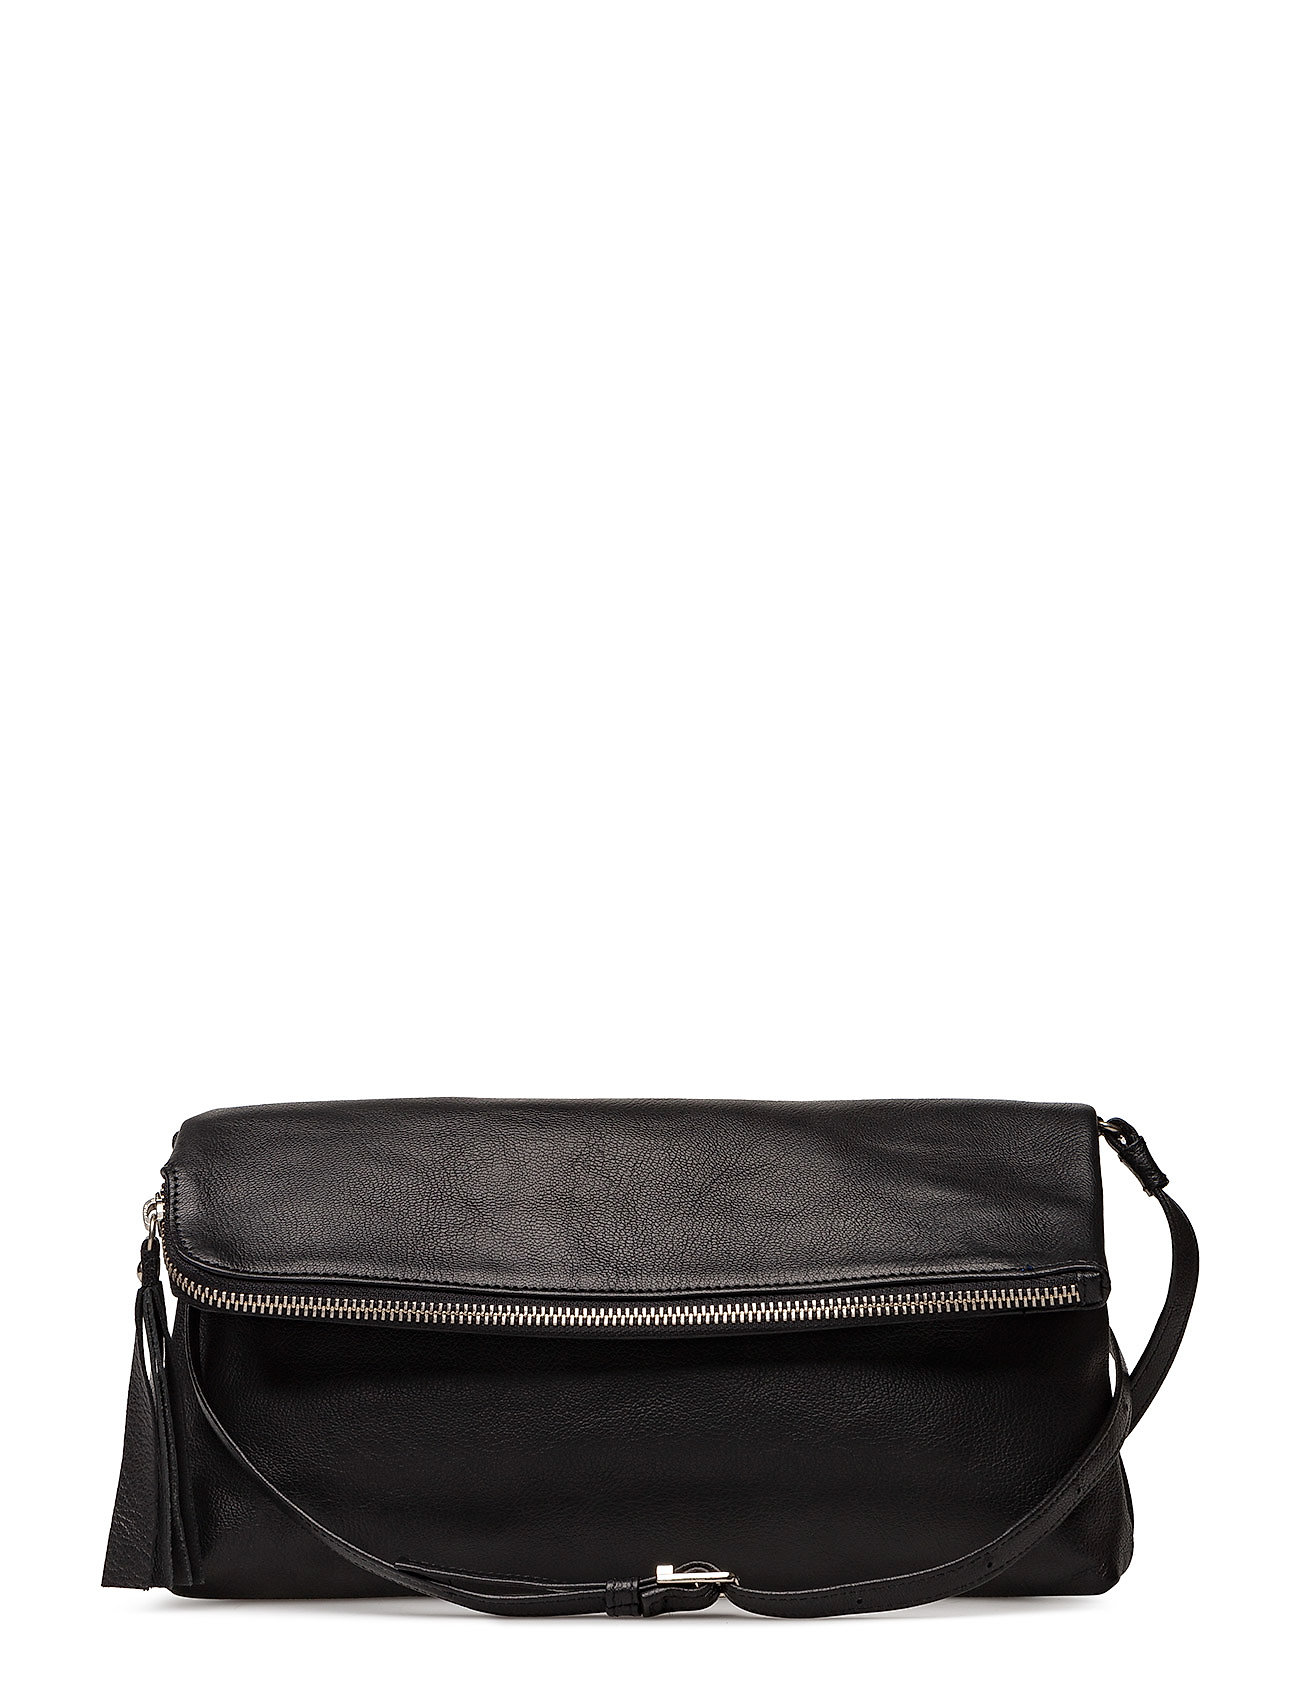 Image of Stefanie Large Pouch Bag Bags Small Shoulder Bags - Crossbody Bags Sort LUMI (3308586499)